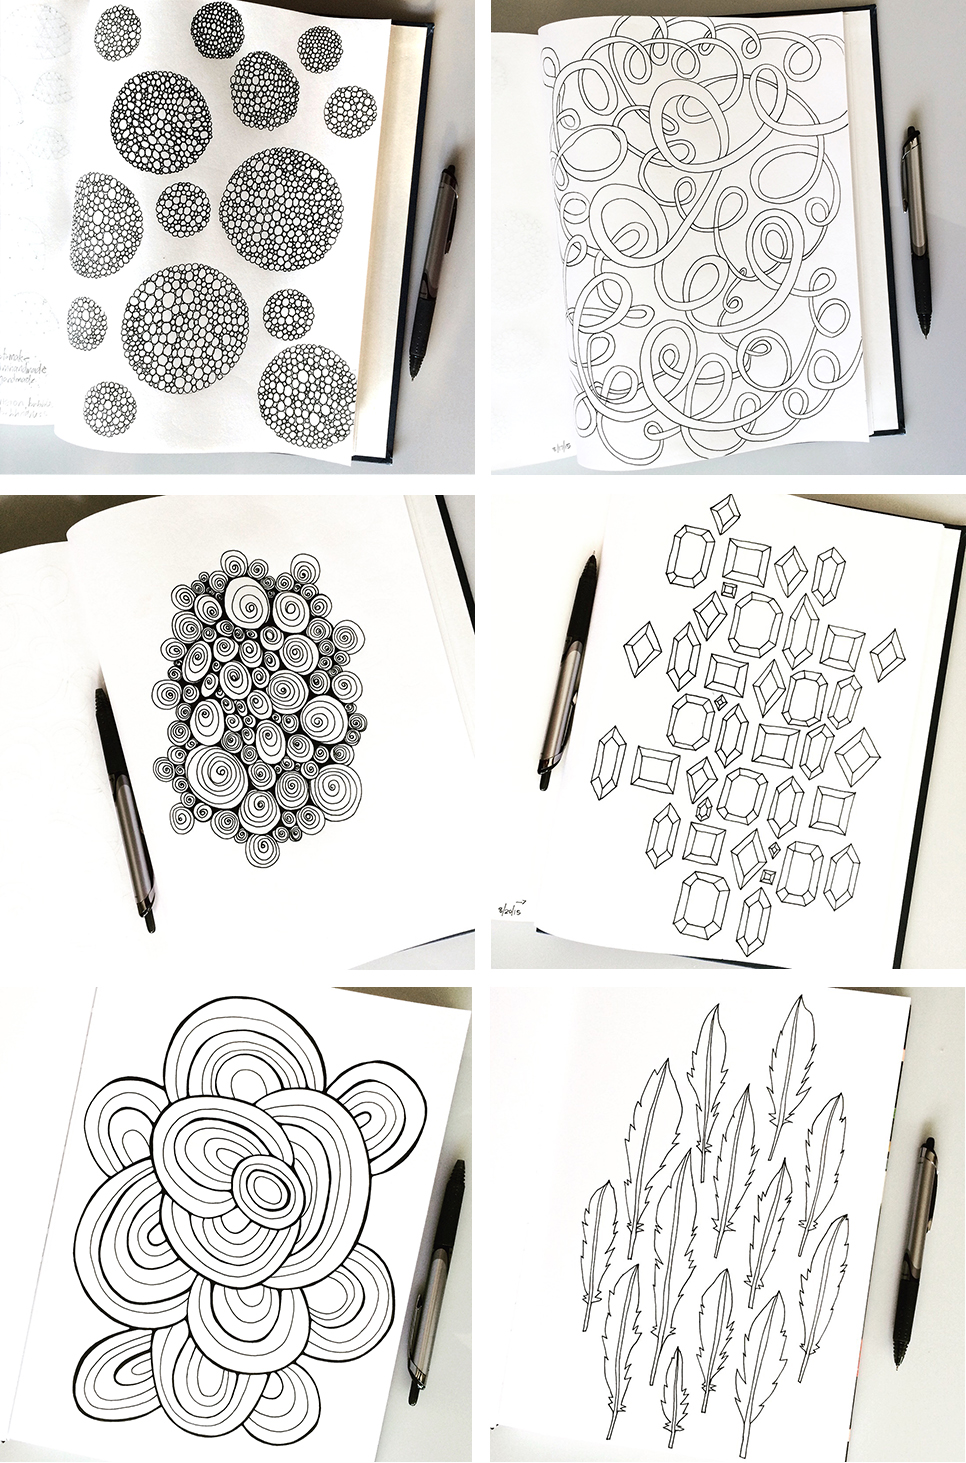 Sketchbook Pattern Drawings Day 25-30